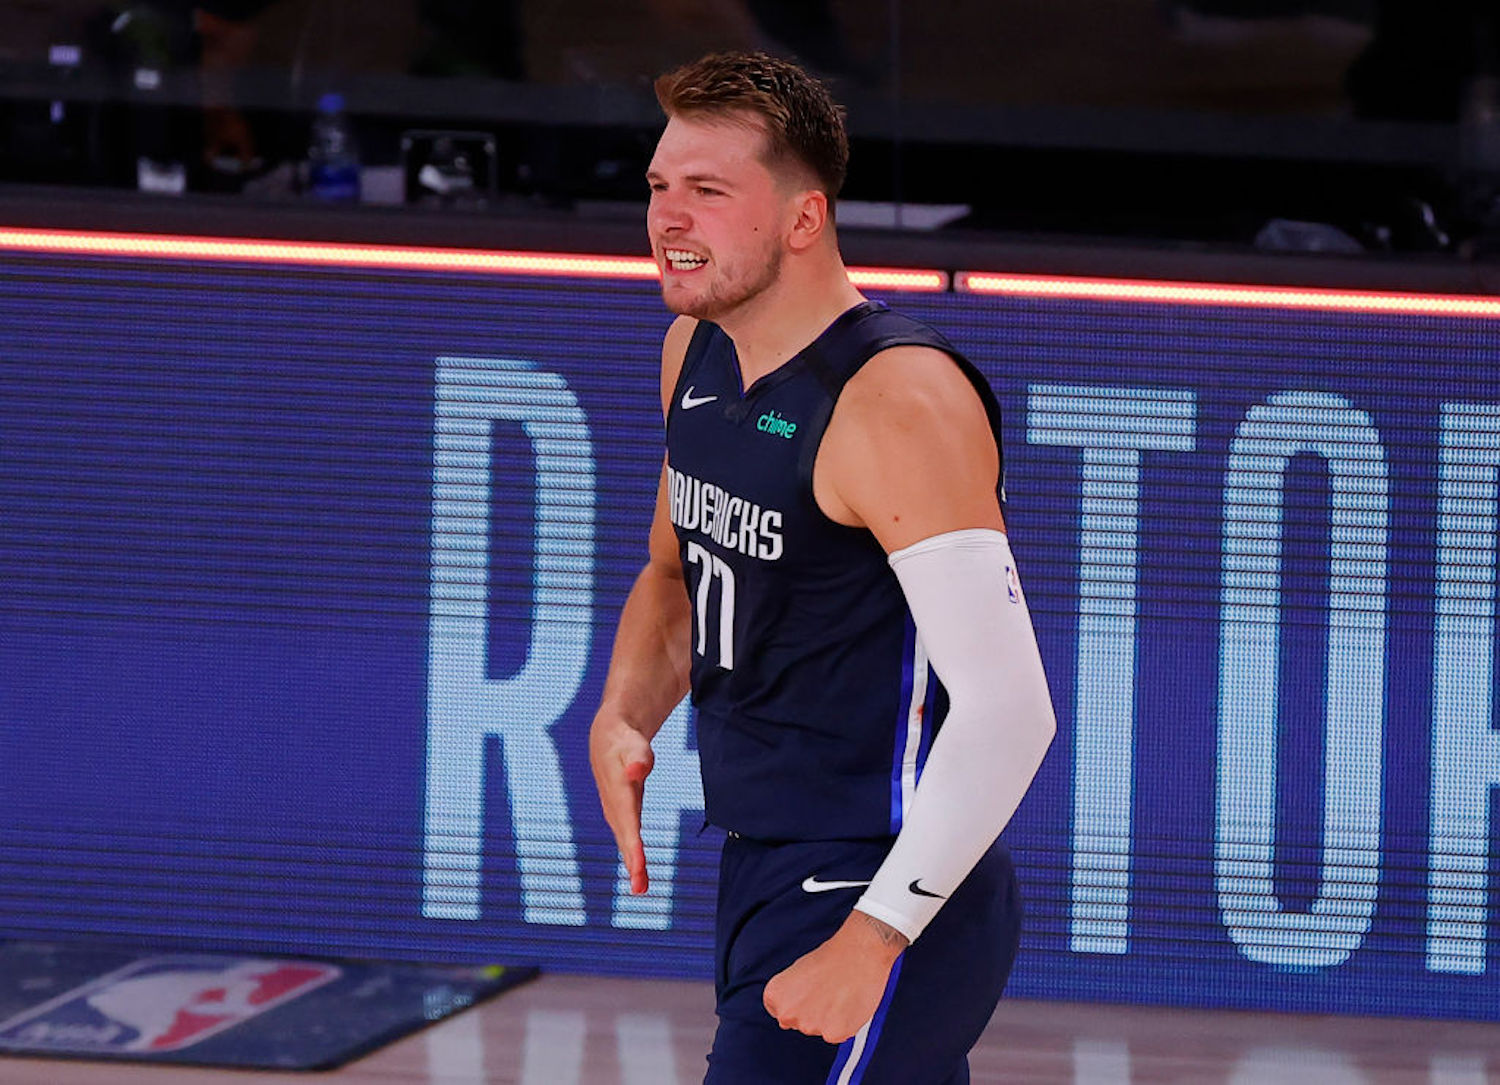 Luka Doncic is setting the NBA world on fire at the age of 21, but where did he grow up and how did he get into the sport of basketball?